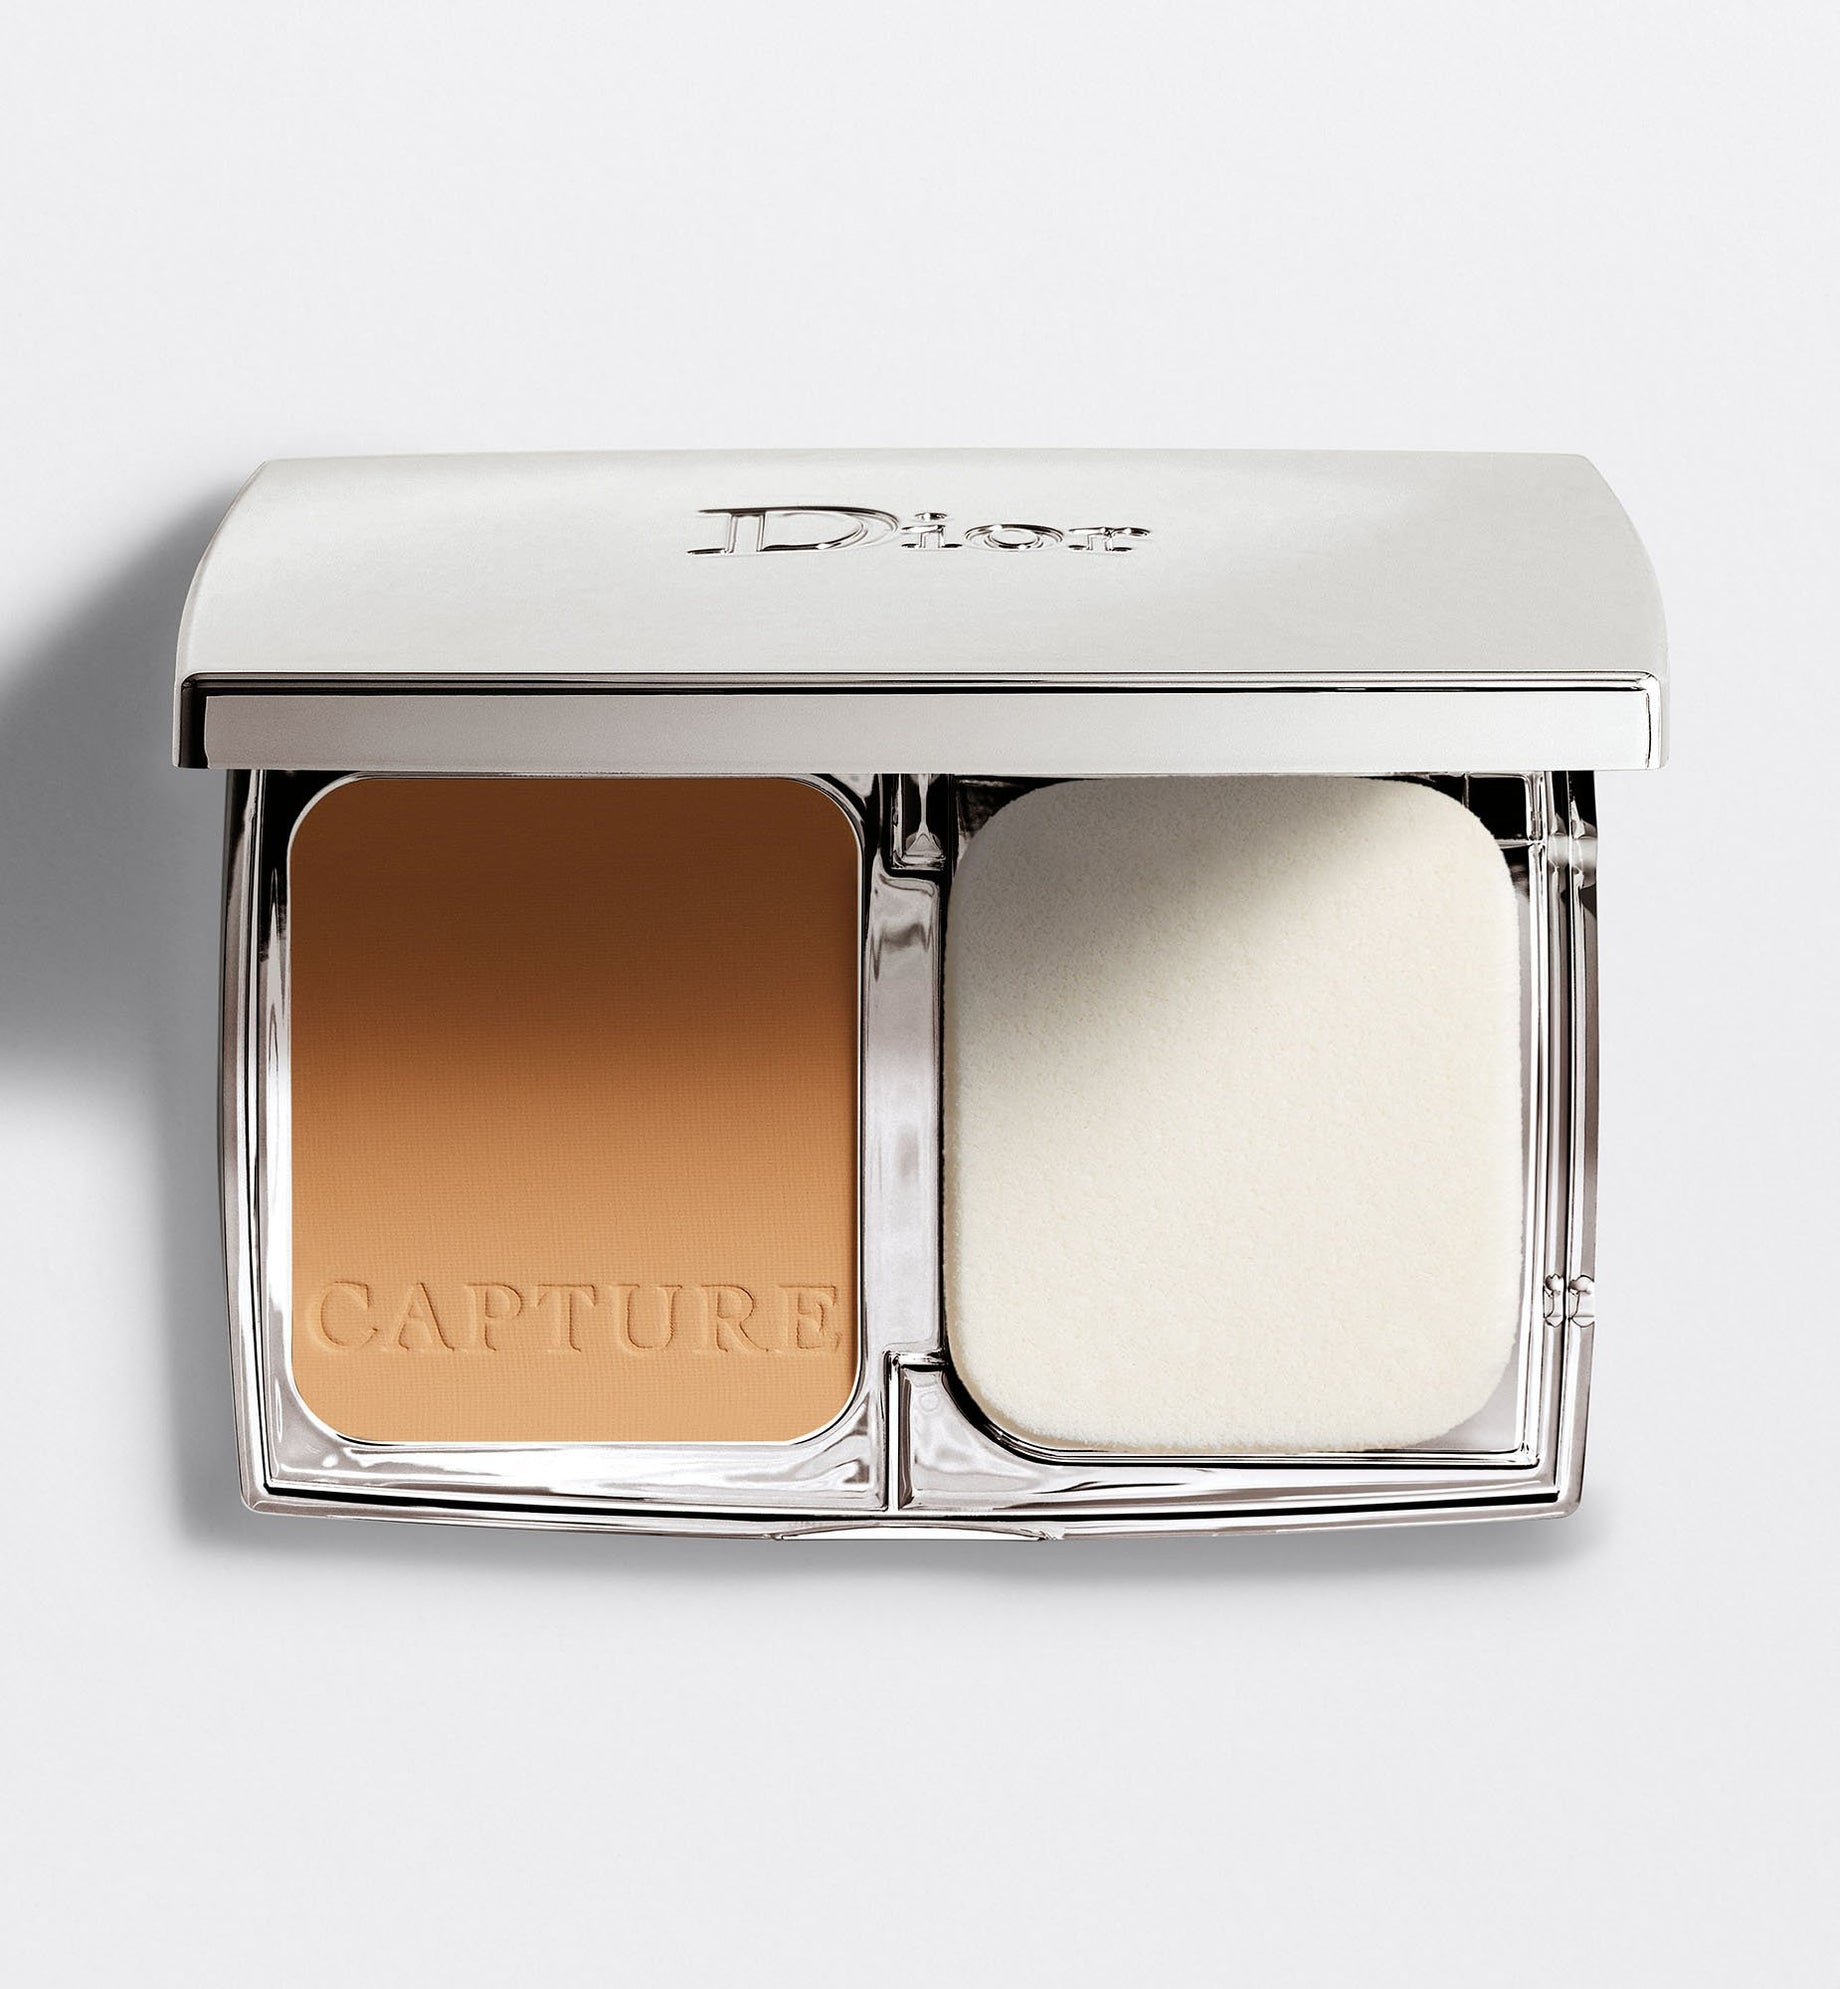 CAPTURE TOTALE TRIPLE CORRECTING POWDER FOUNDATION